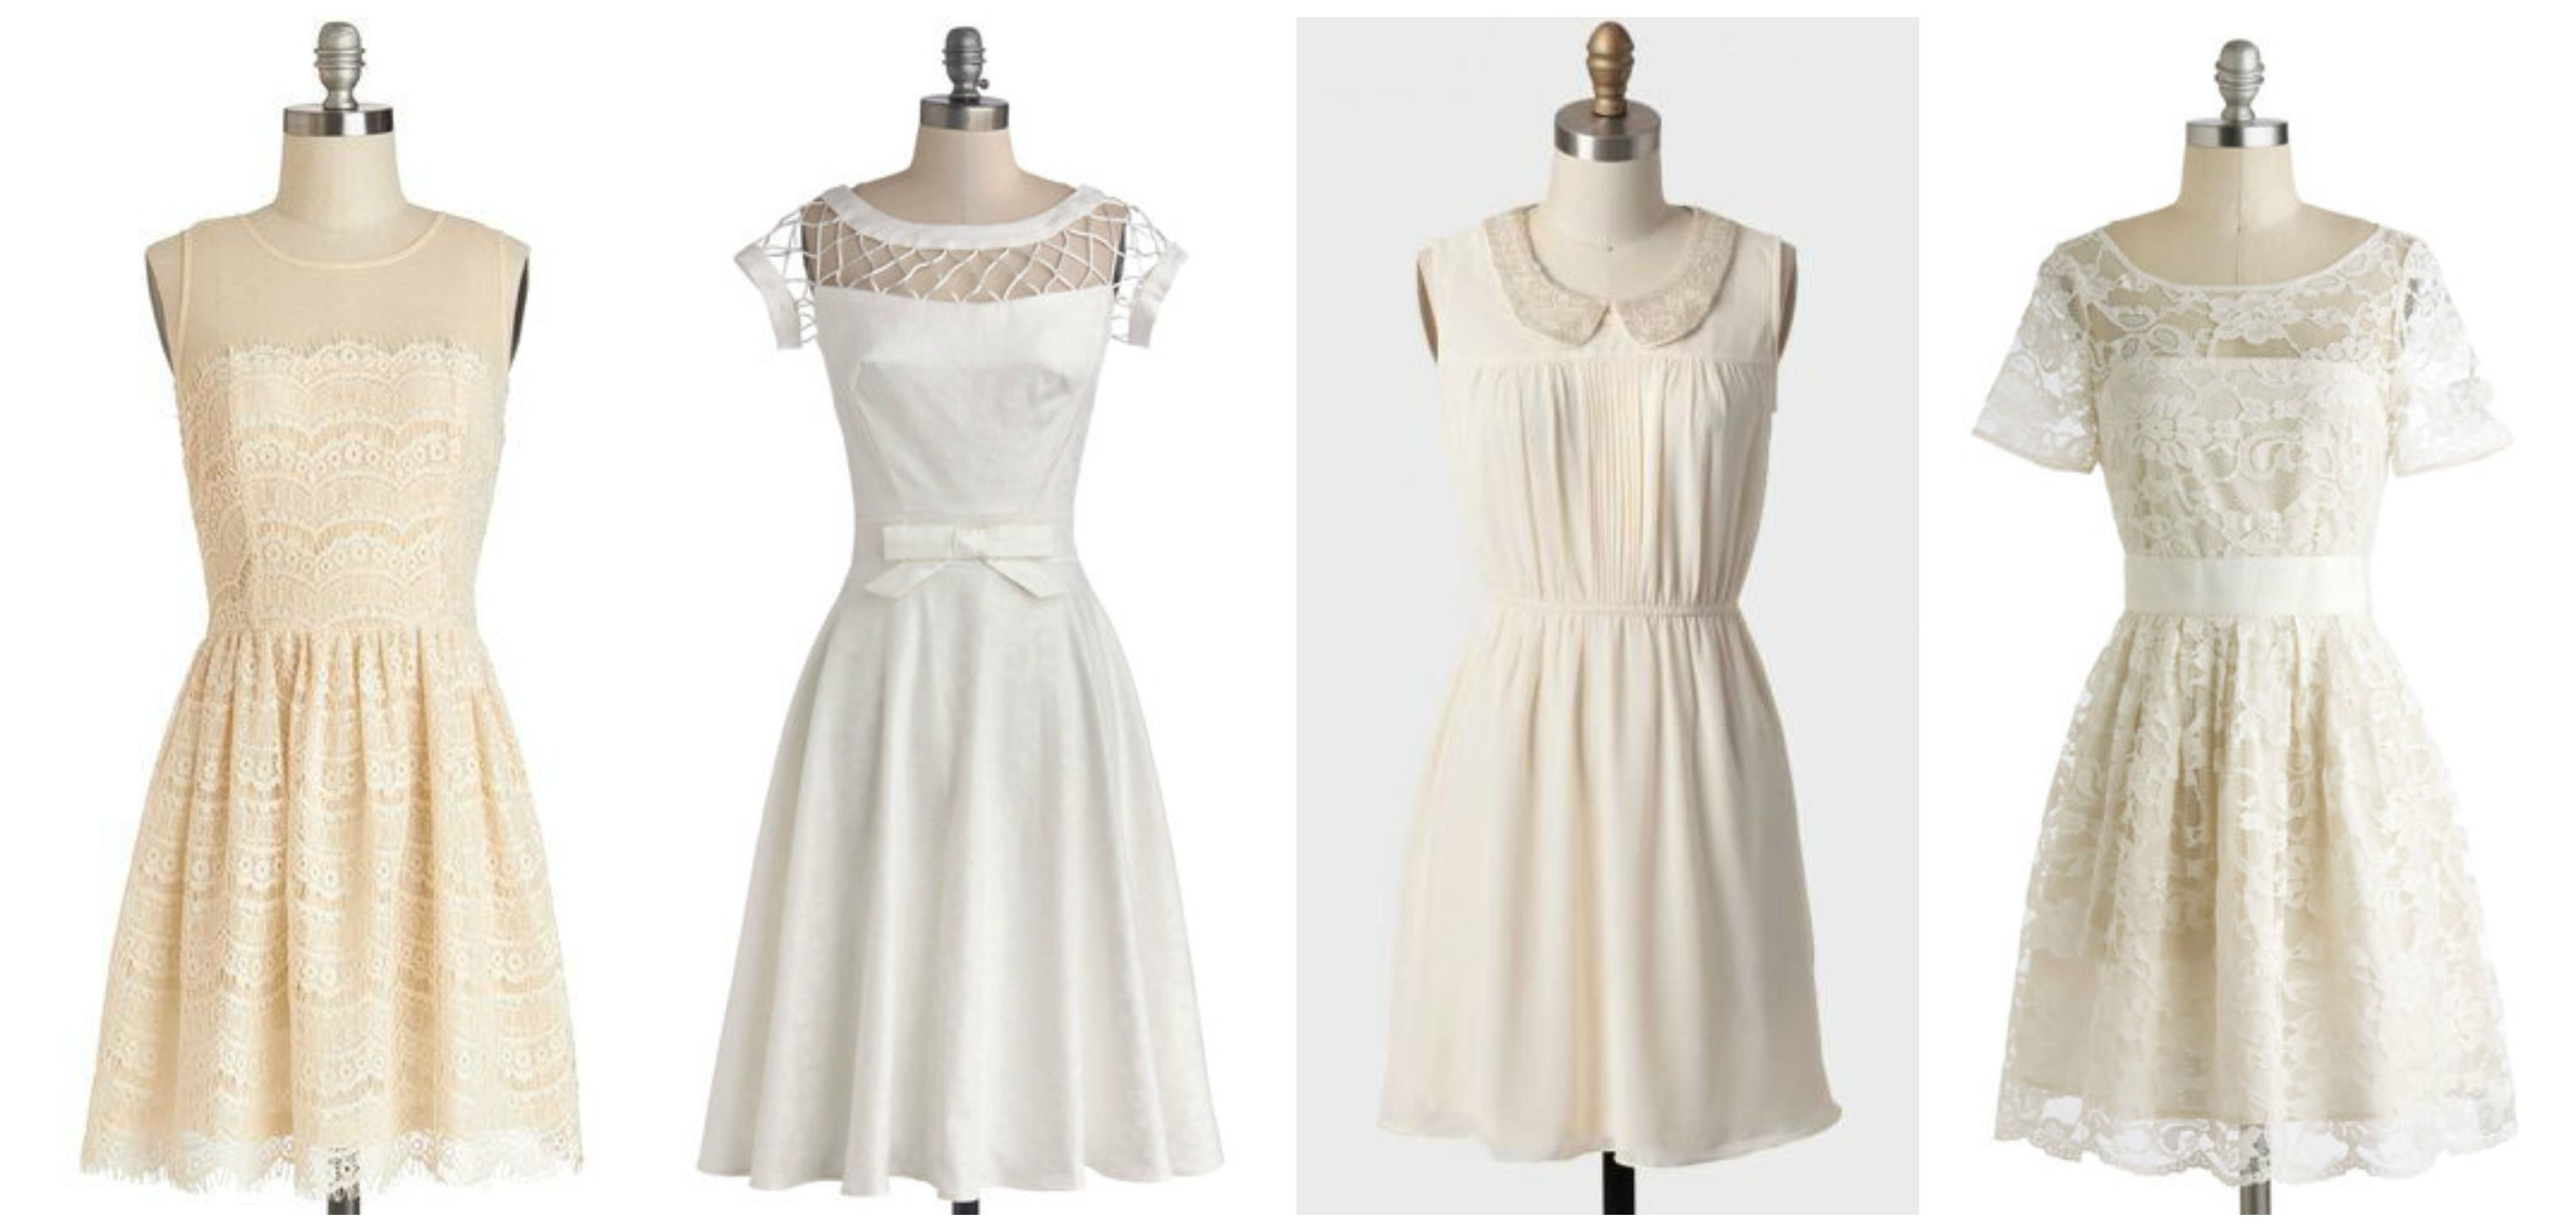 What it would look like with the proposed Katie and Allie dresses